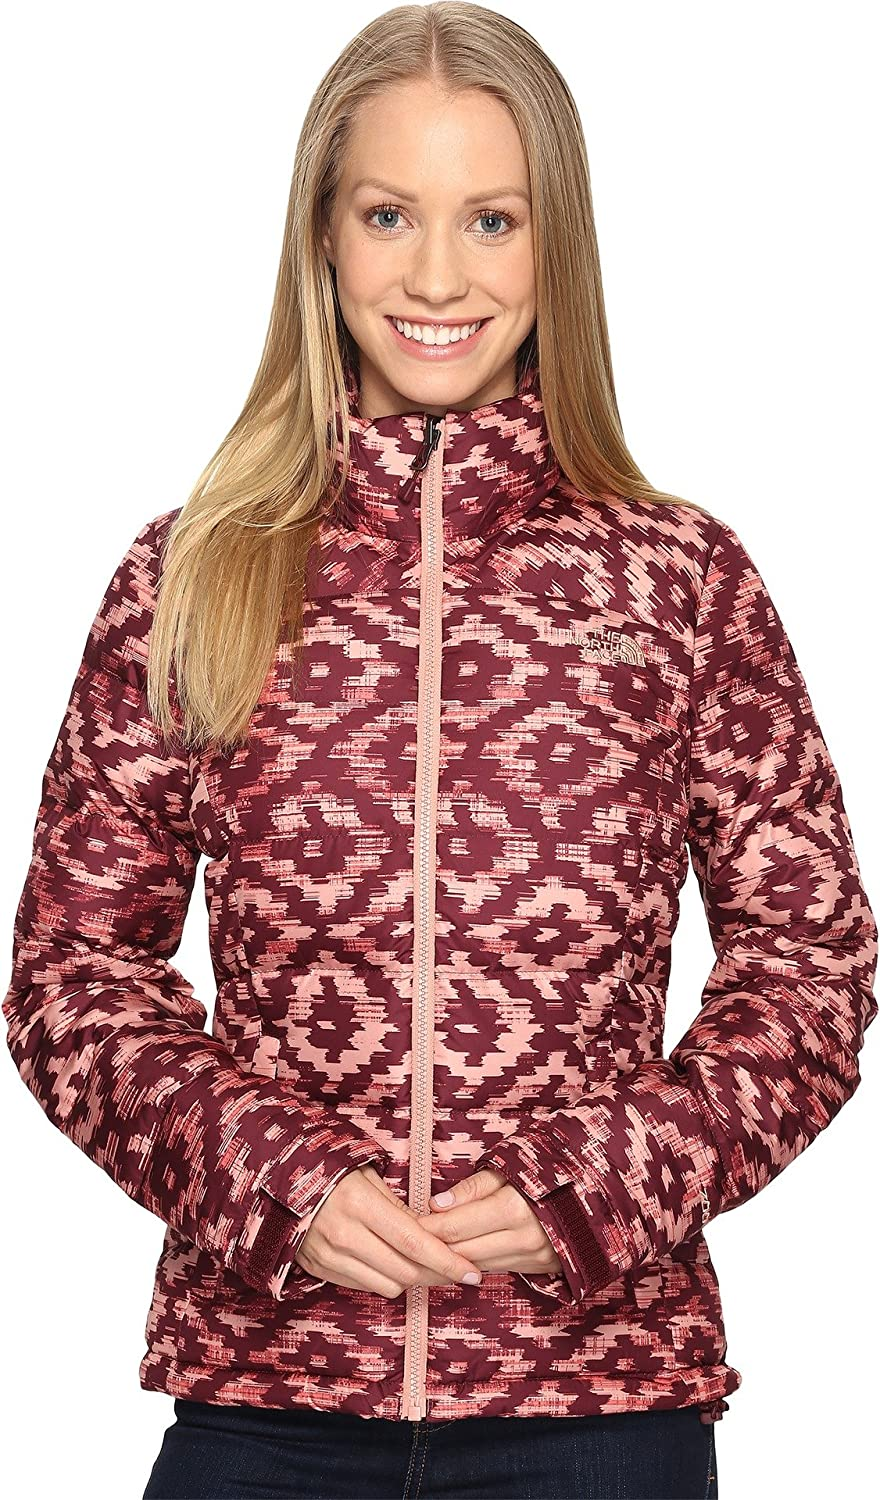 Image of Casual Jackets The North Face Women's Nuptse 2 Jacket